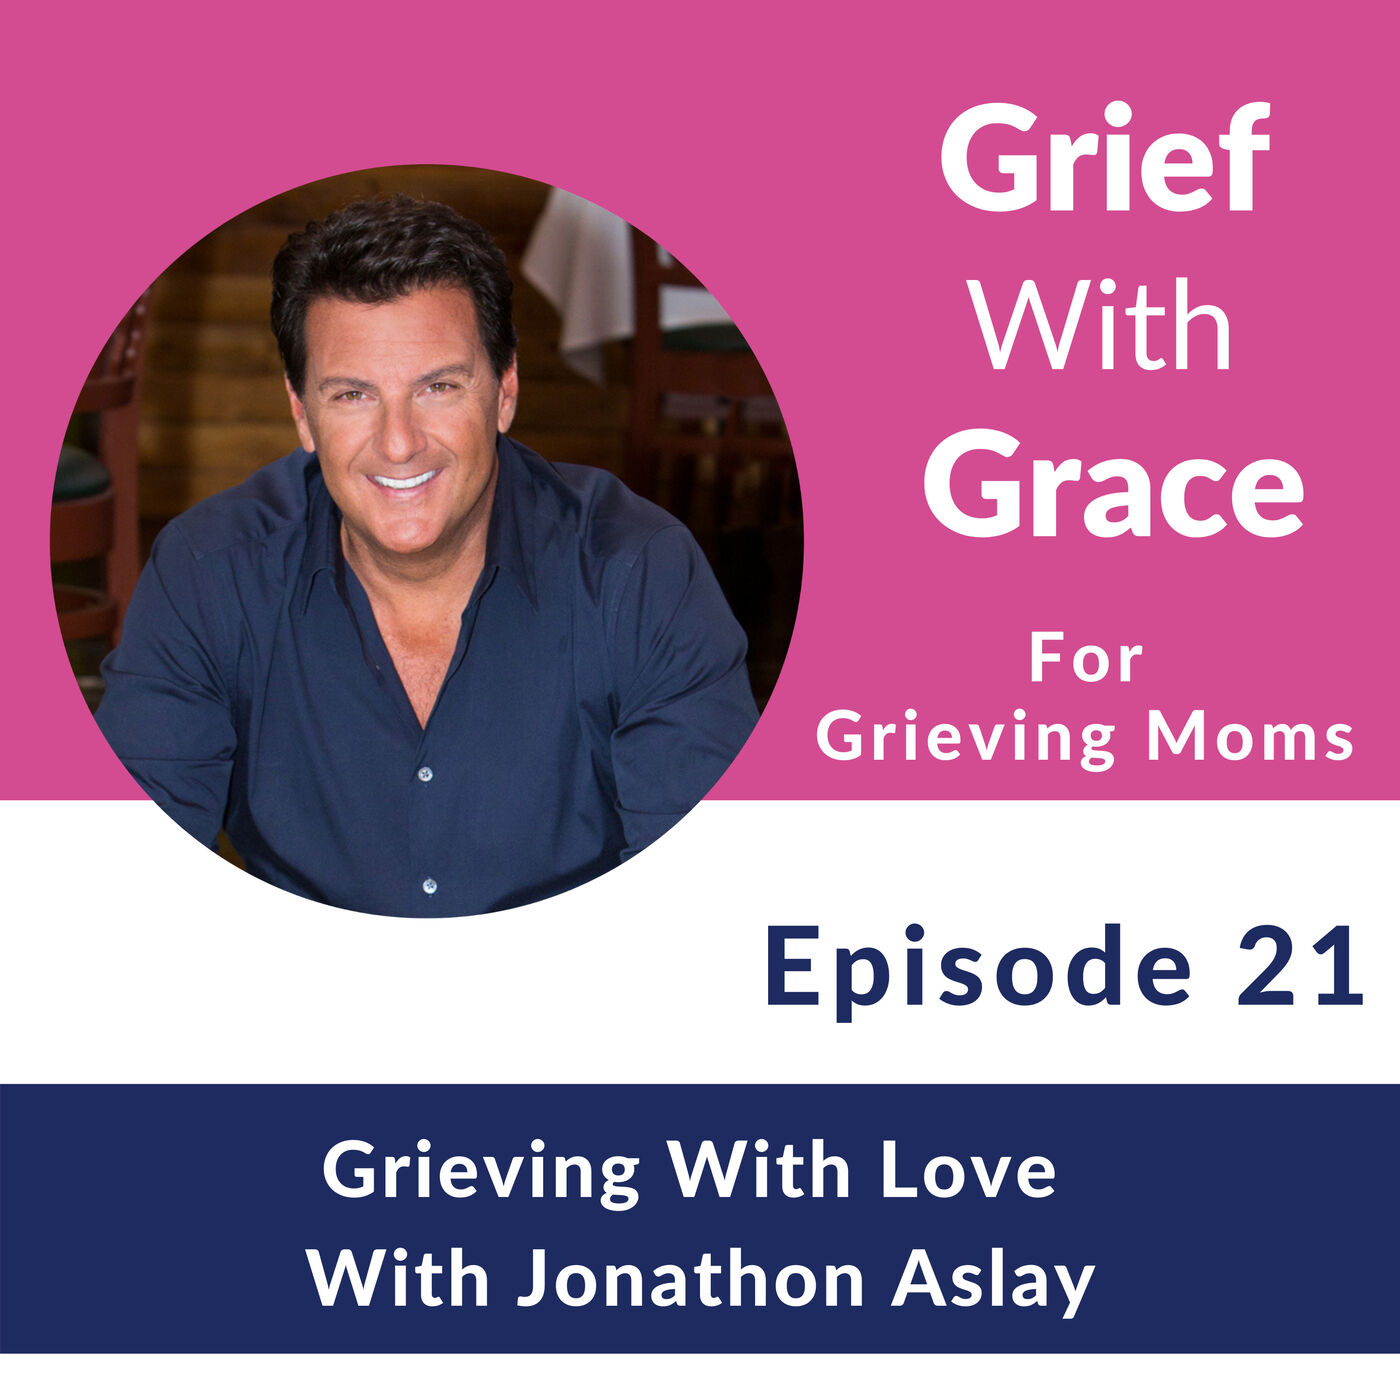 21. Grieving With Love with Jonathon Aslay